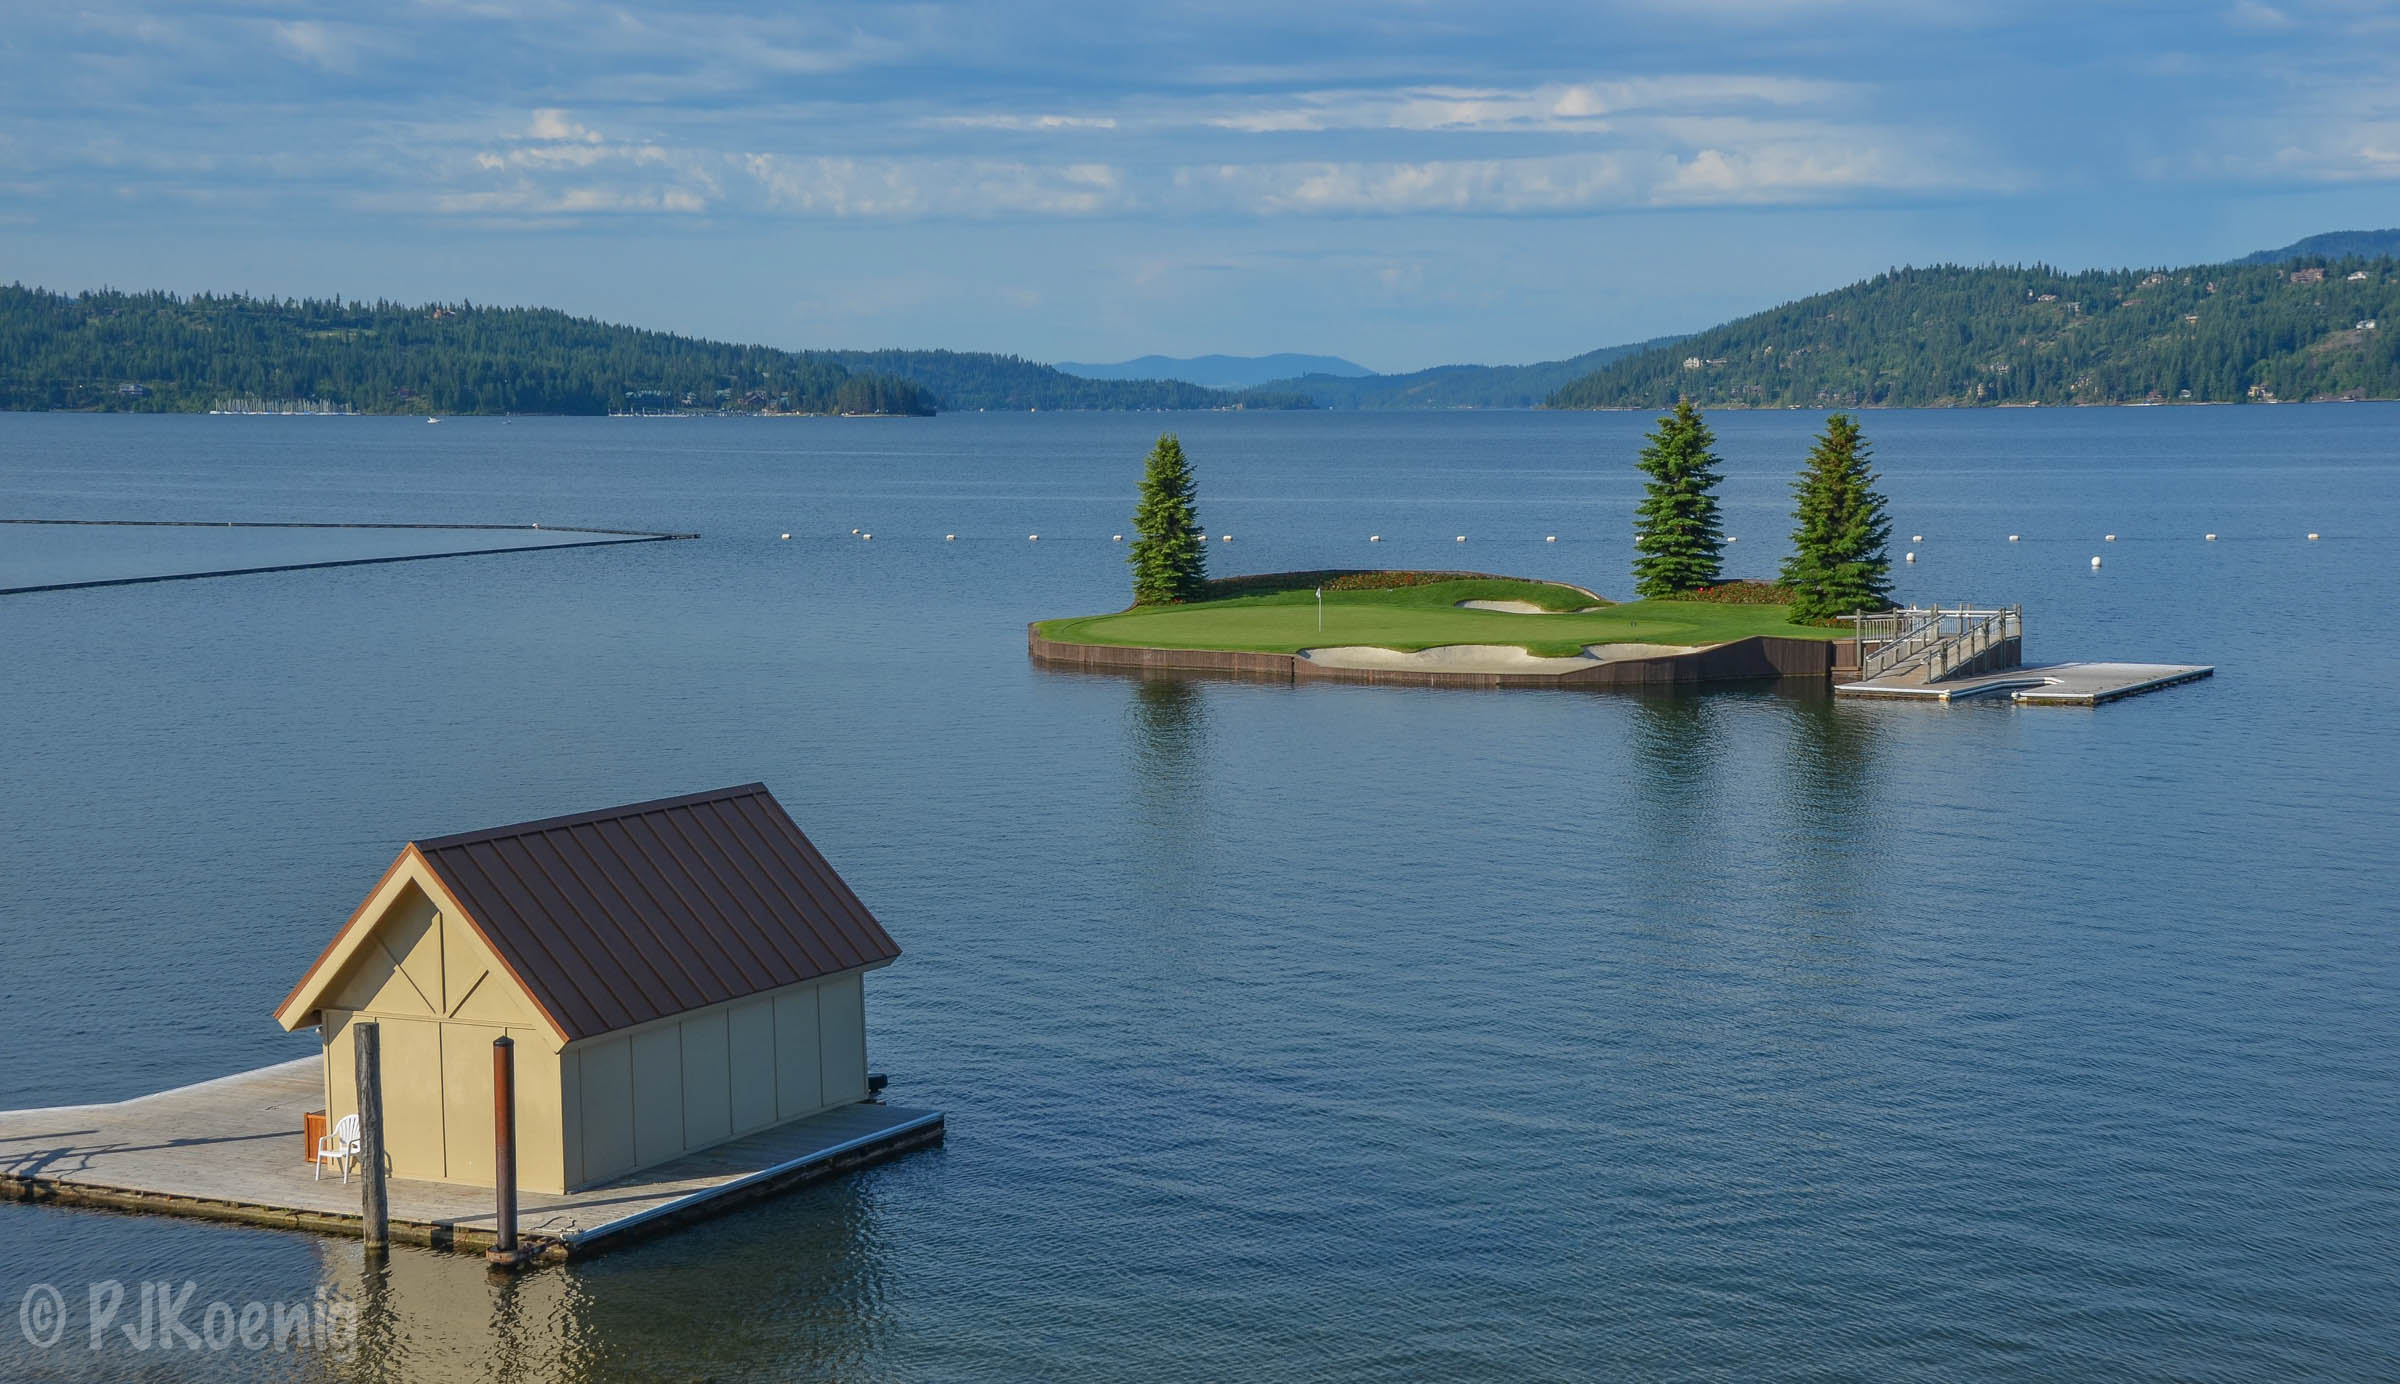 Coming in at #88 is the Resort Course at Coeur d'Alene with the world's only floating island green